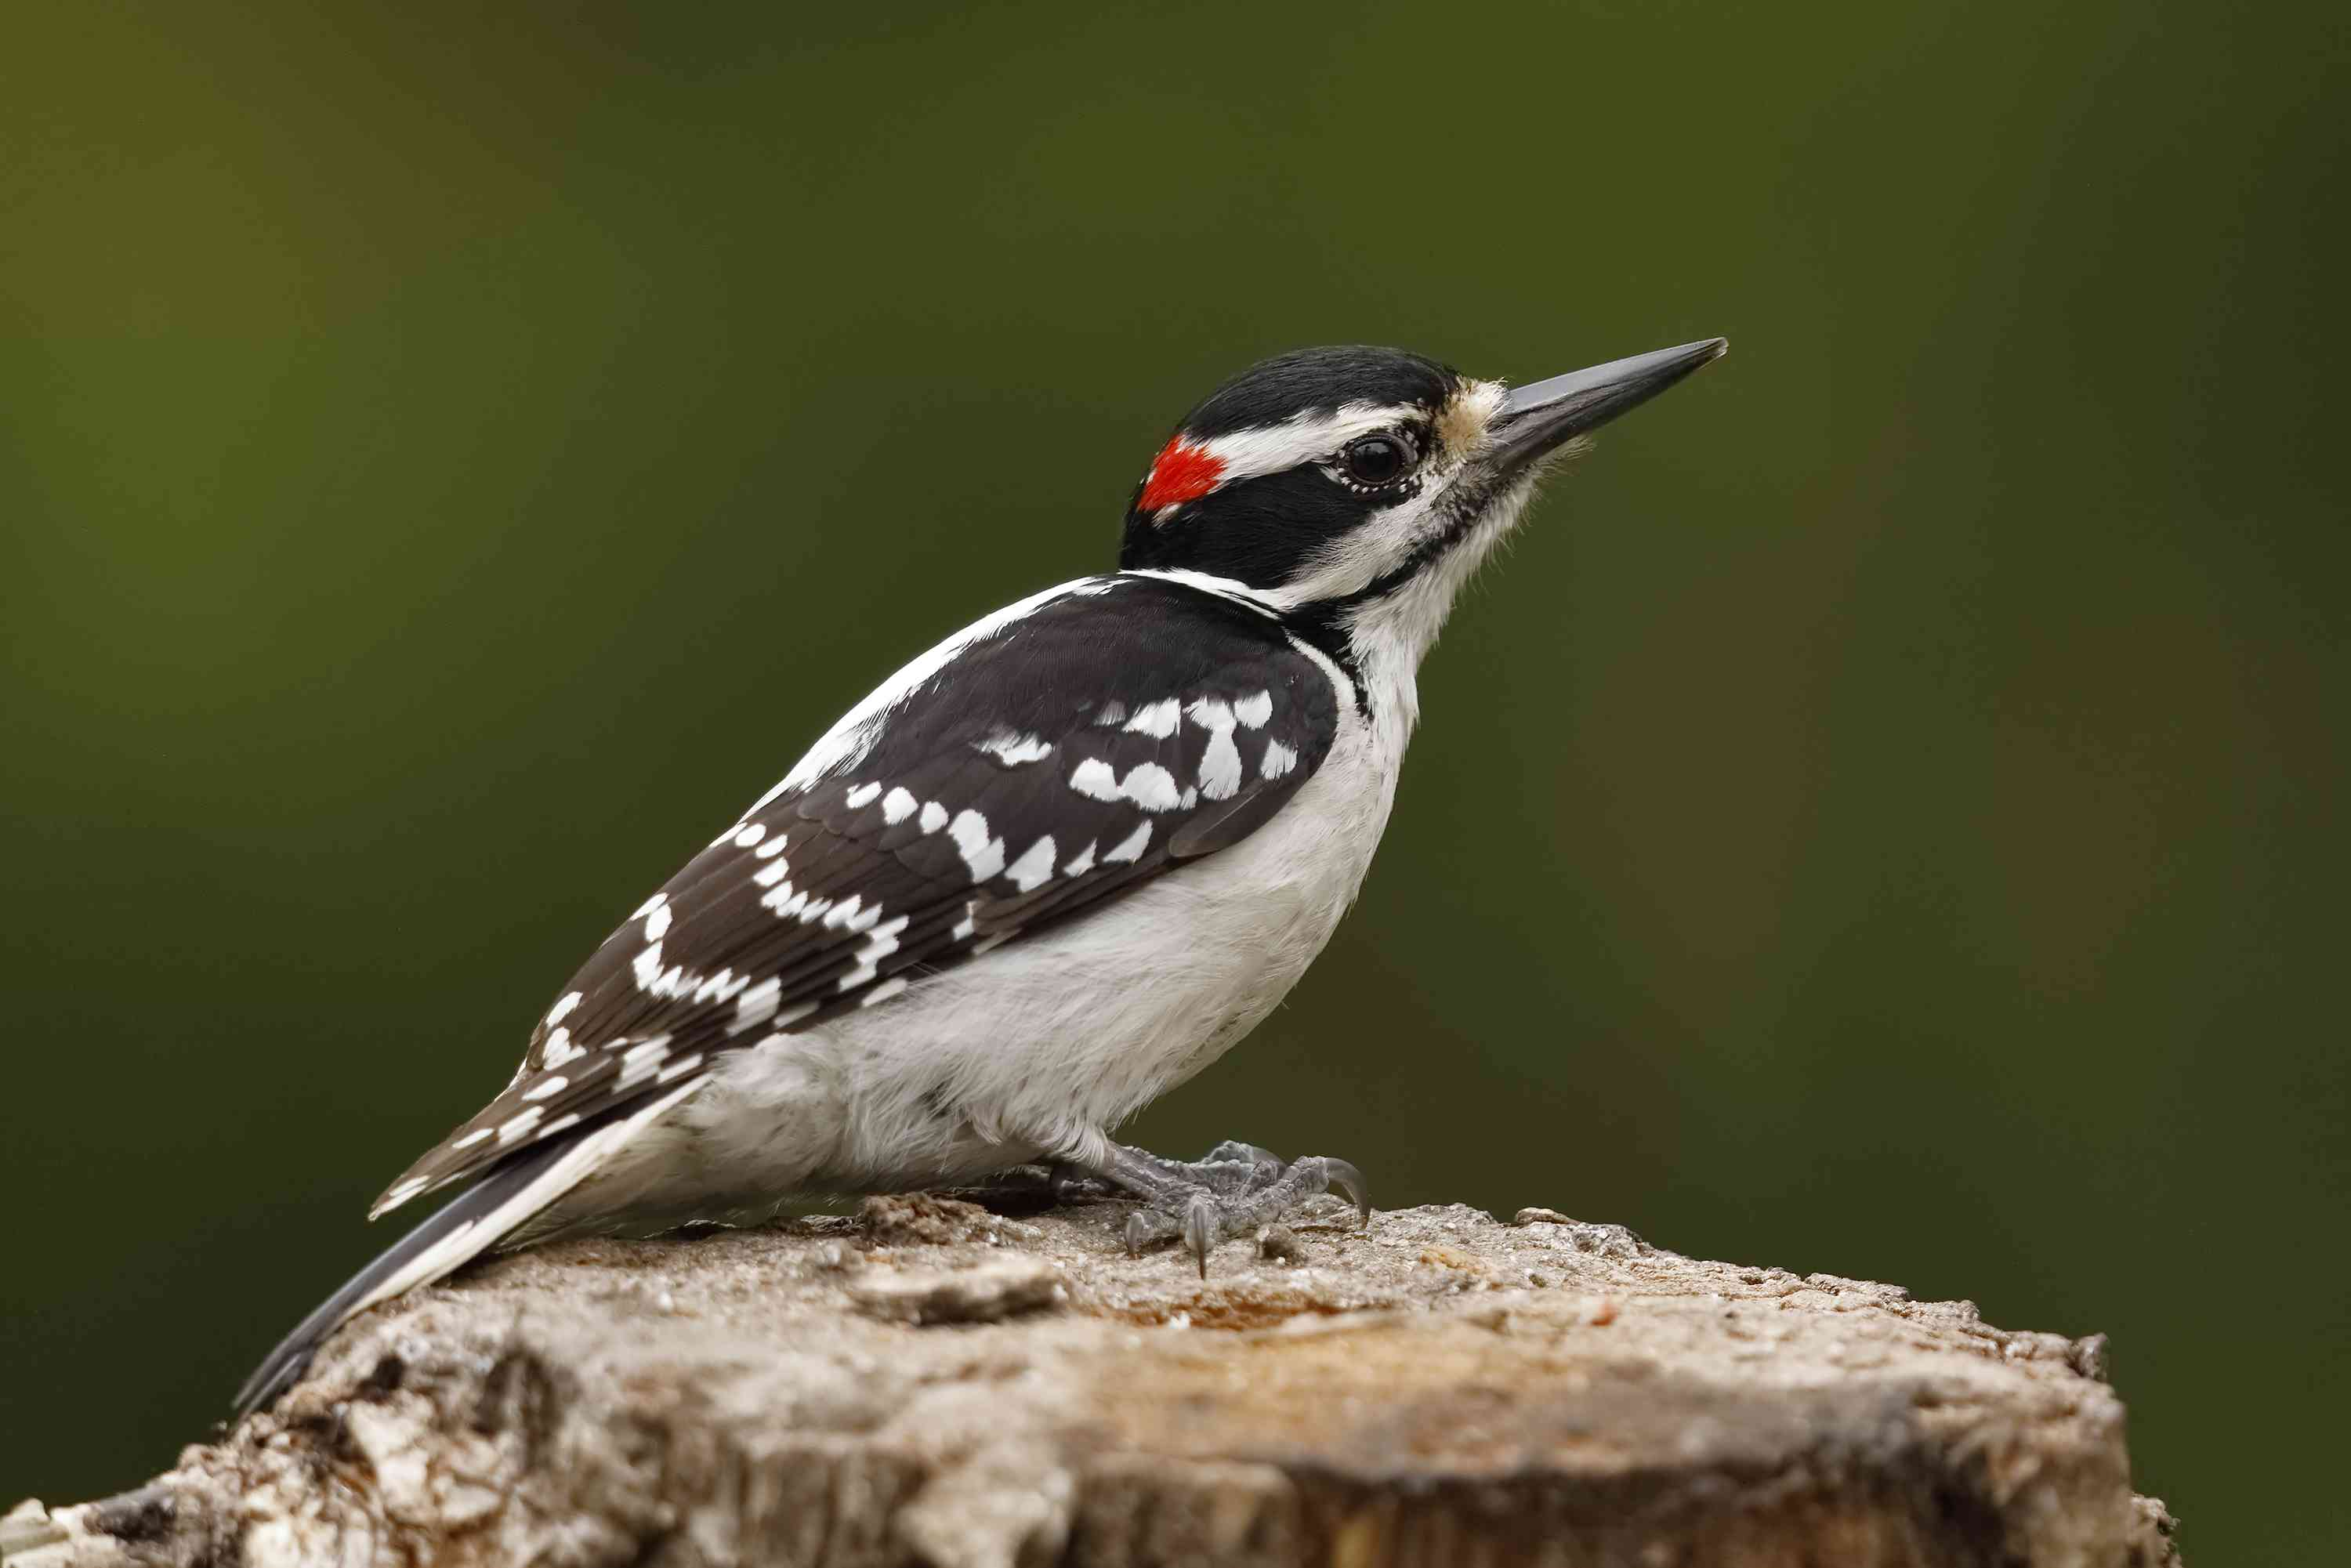 A hairy woodpecker perched on a tree stump.